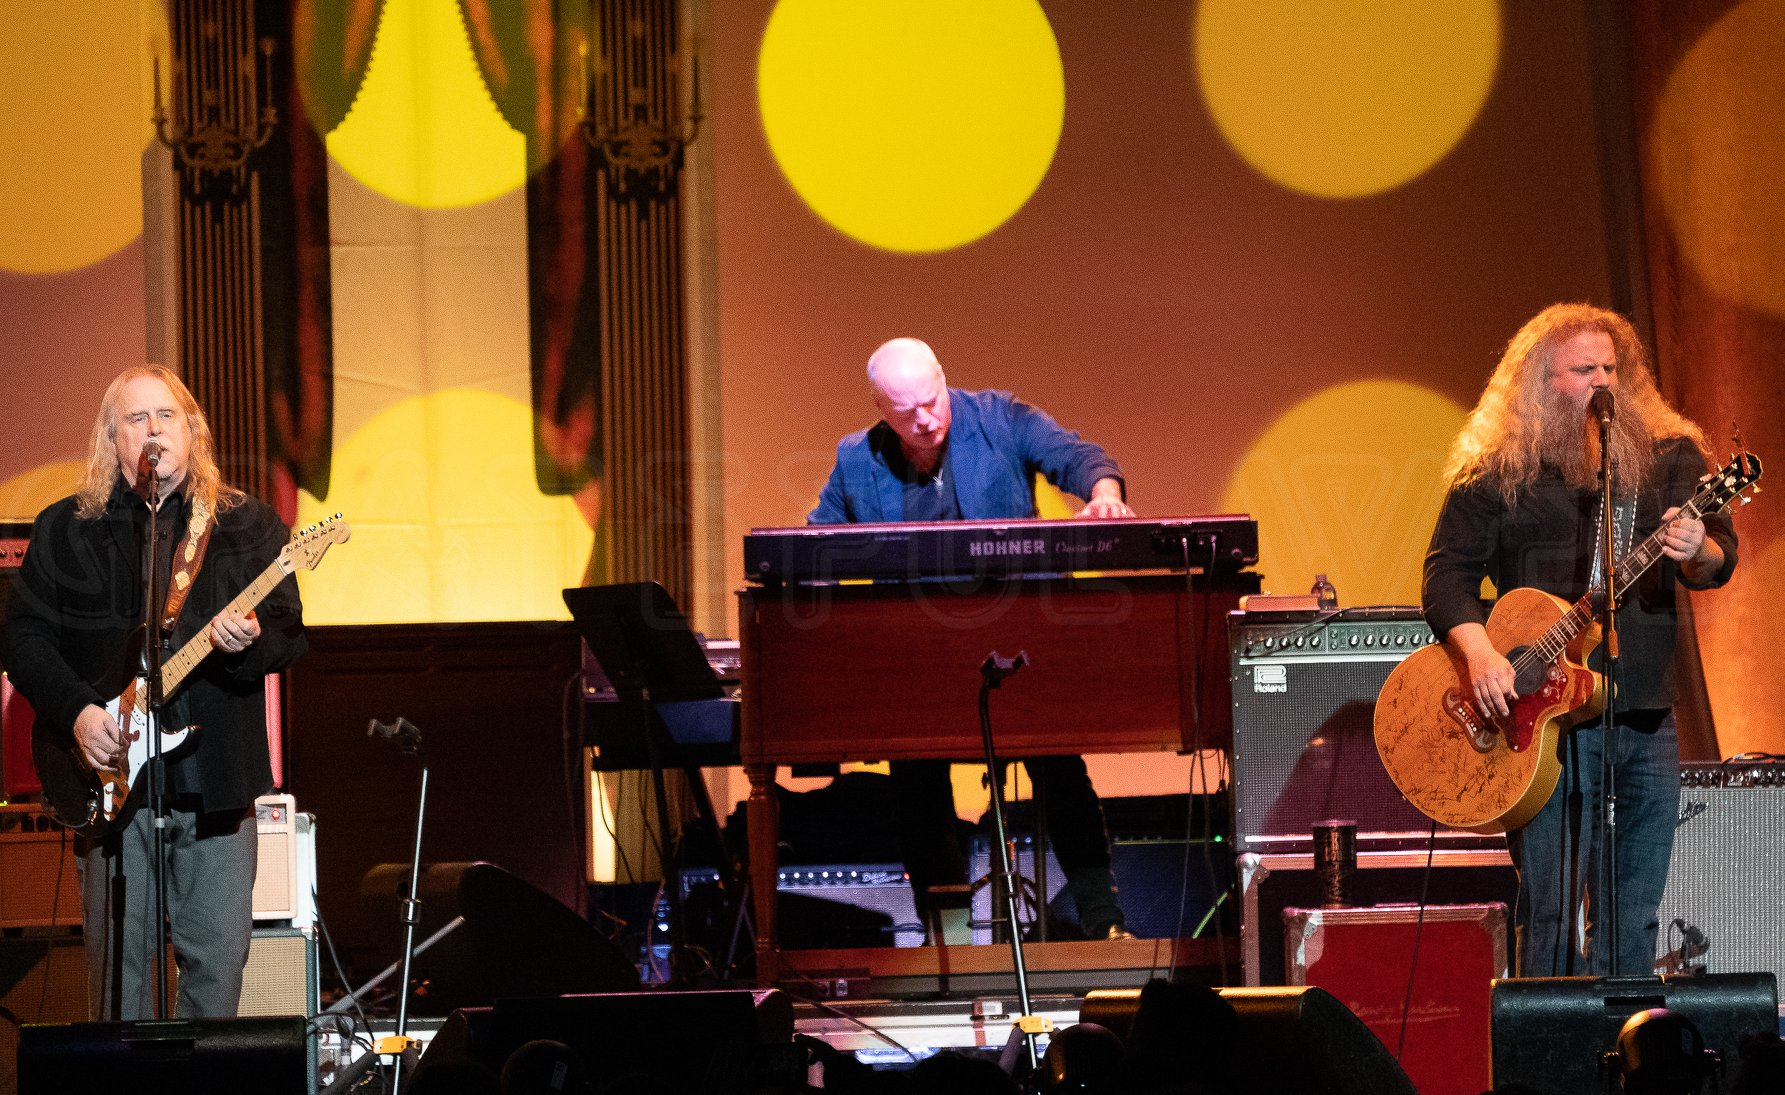 Warren, John Medeski and Jamey Johnson